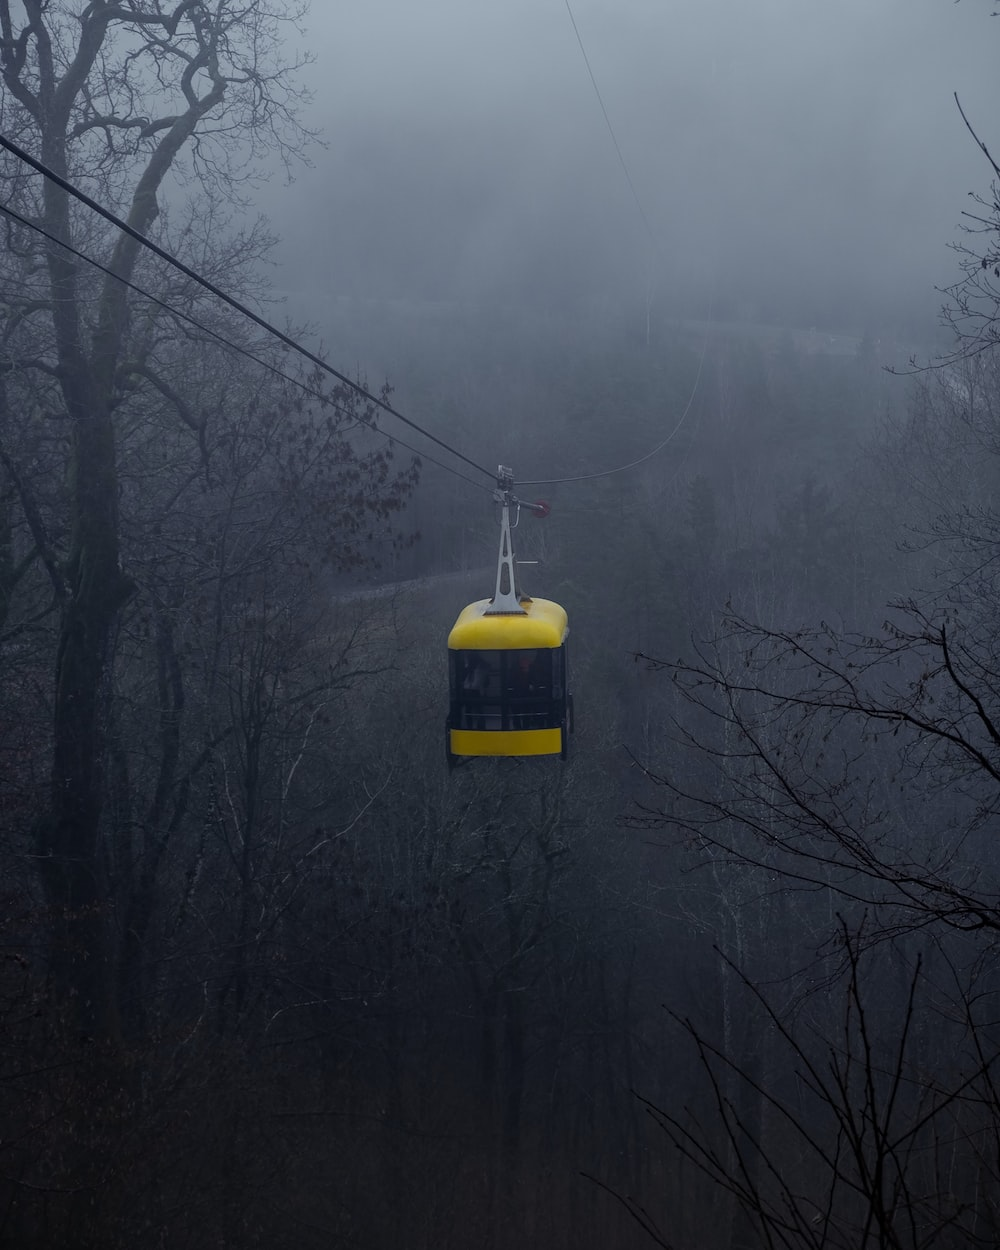 yellow and black cable car over the trees